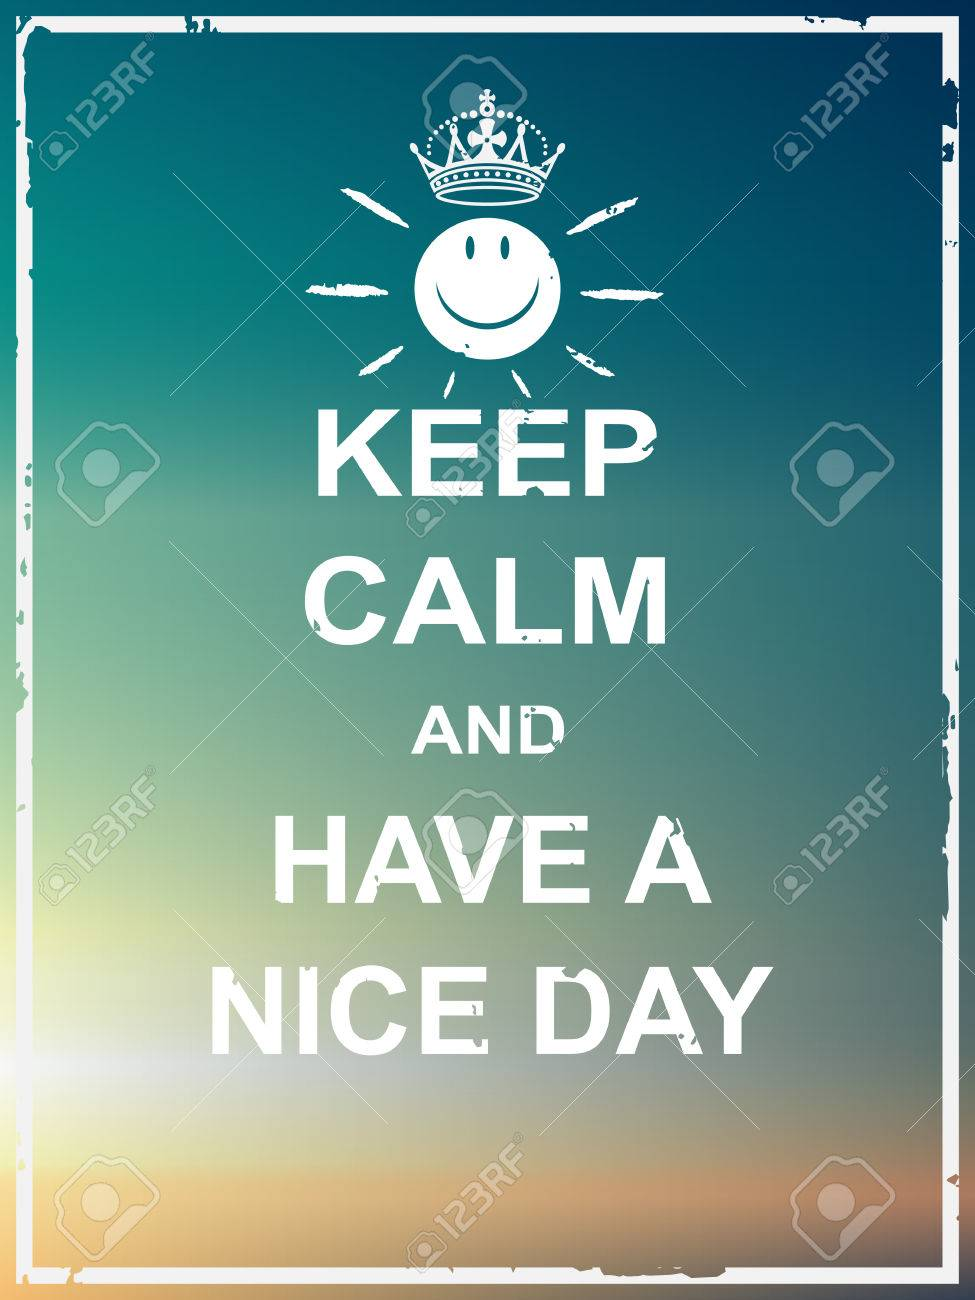 Keep calm and have a nice day poster for greeting,card,webpage,multipurpose - 51304955